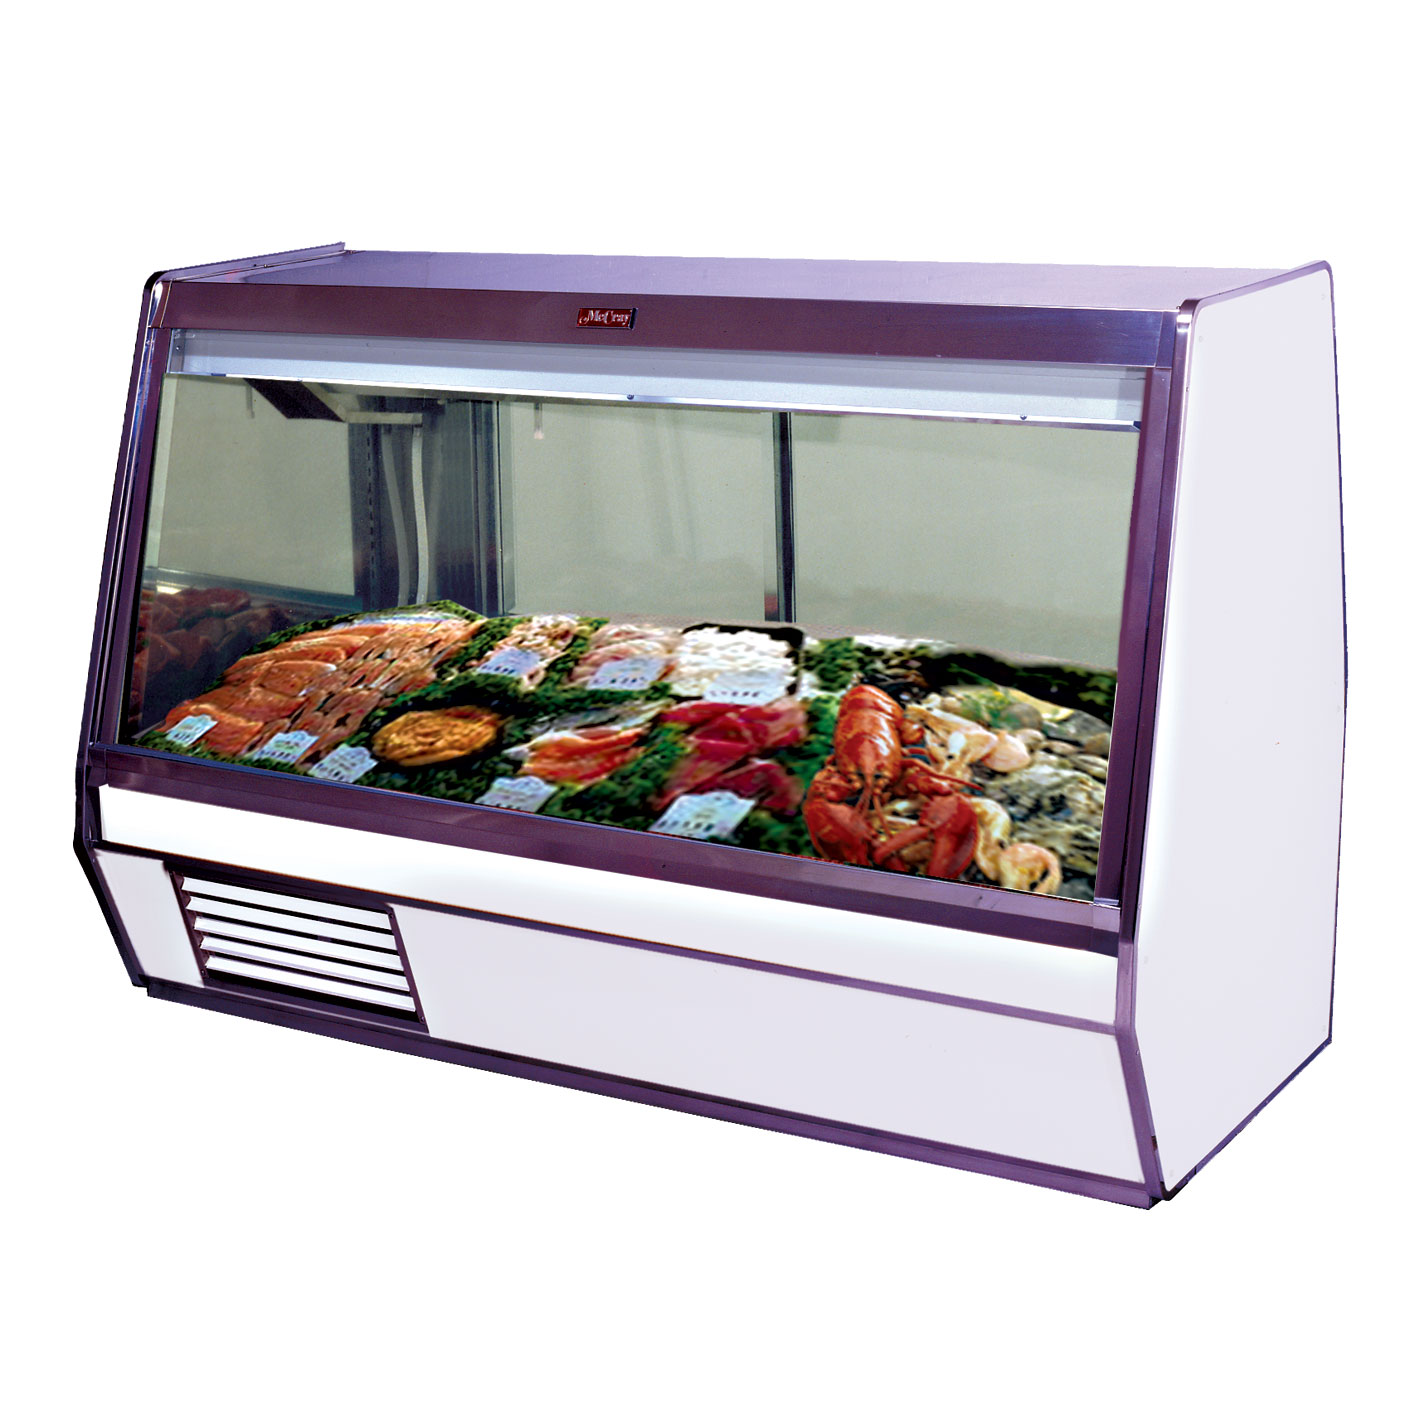 Howard-McCray SC-CFS32E-6-LED display case, deli seafood / poultry